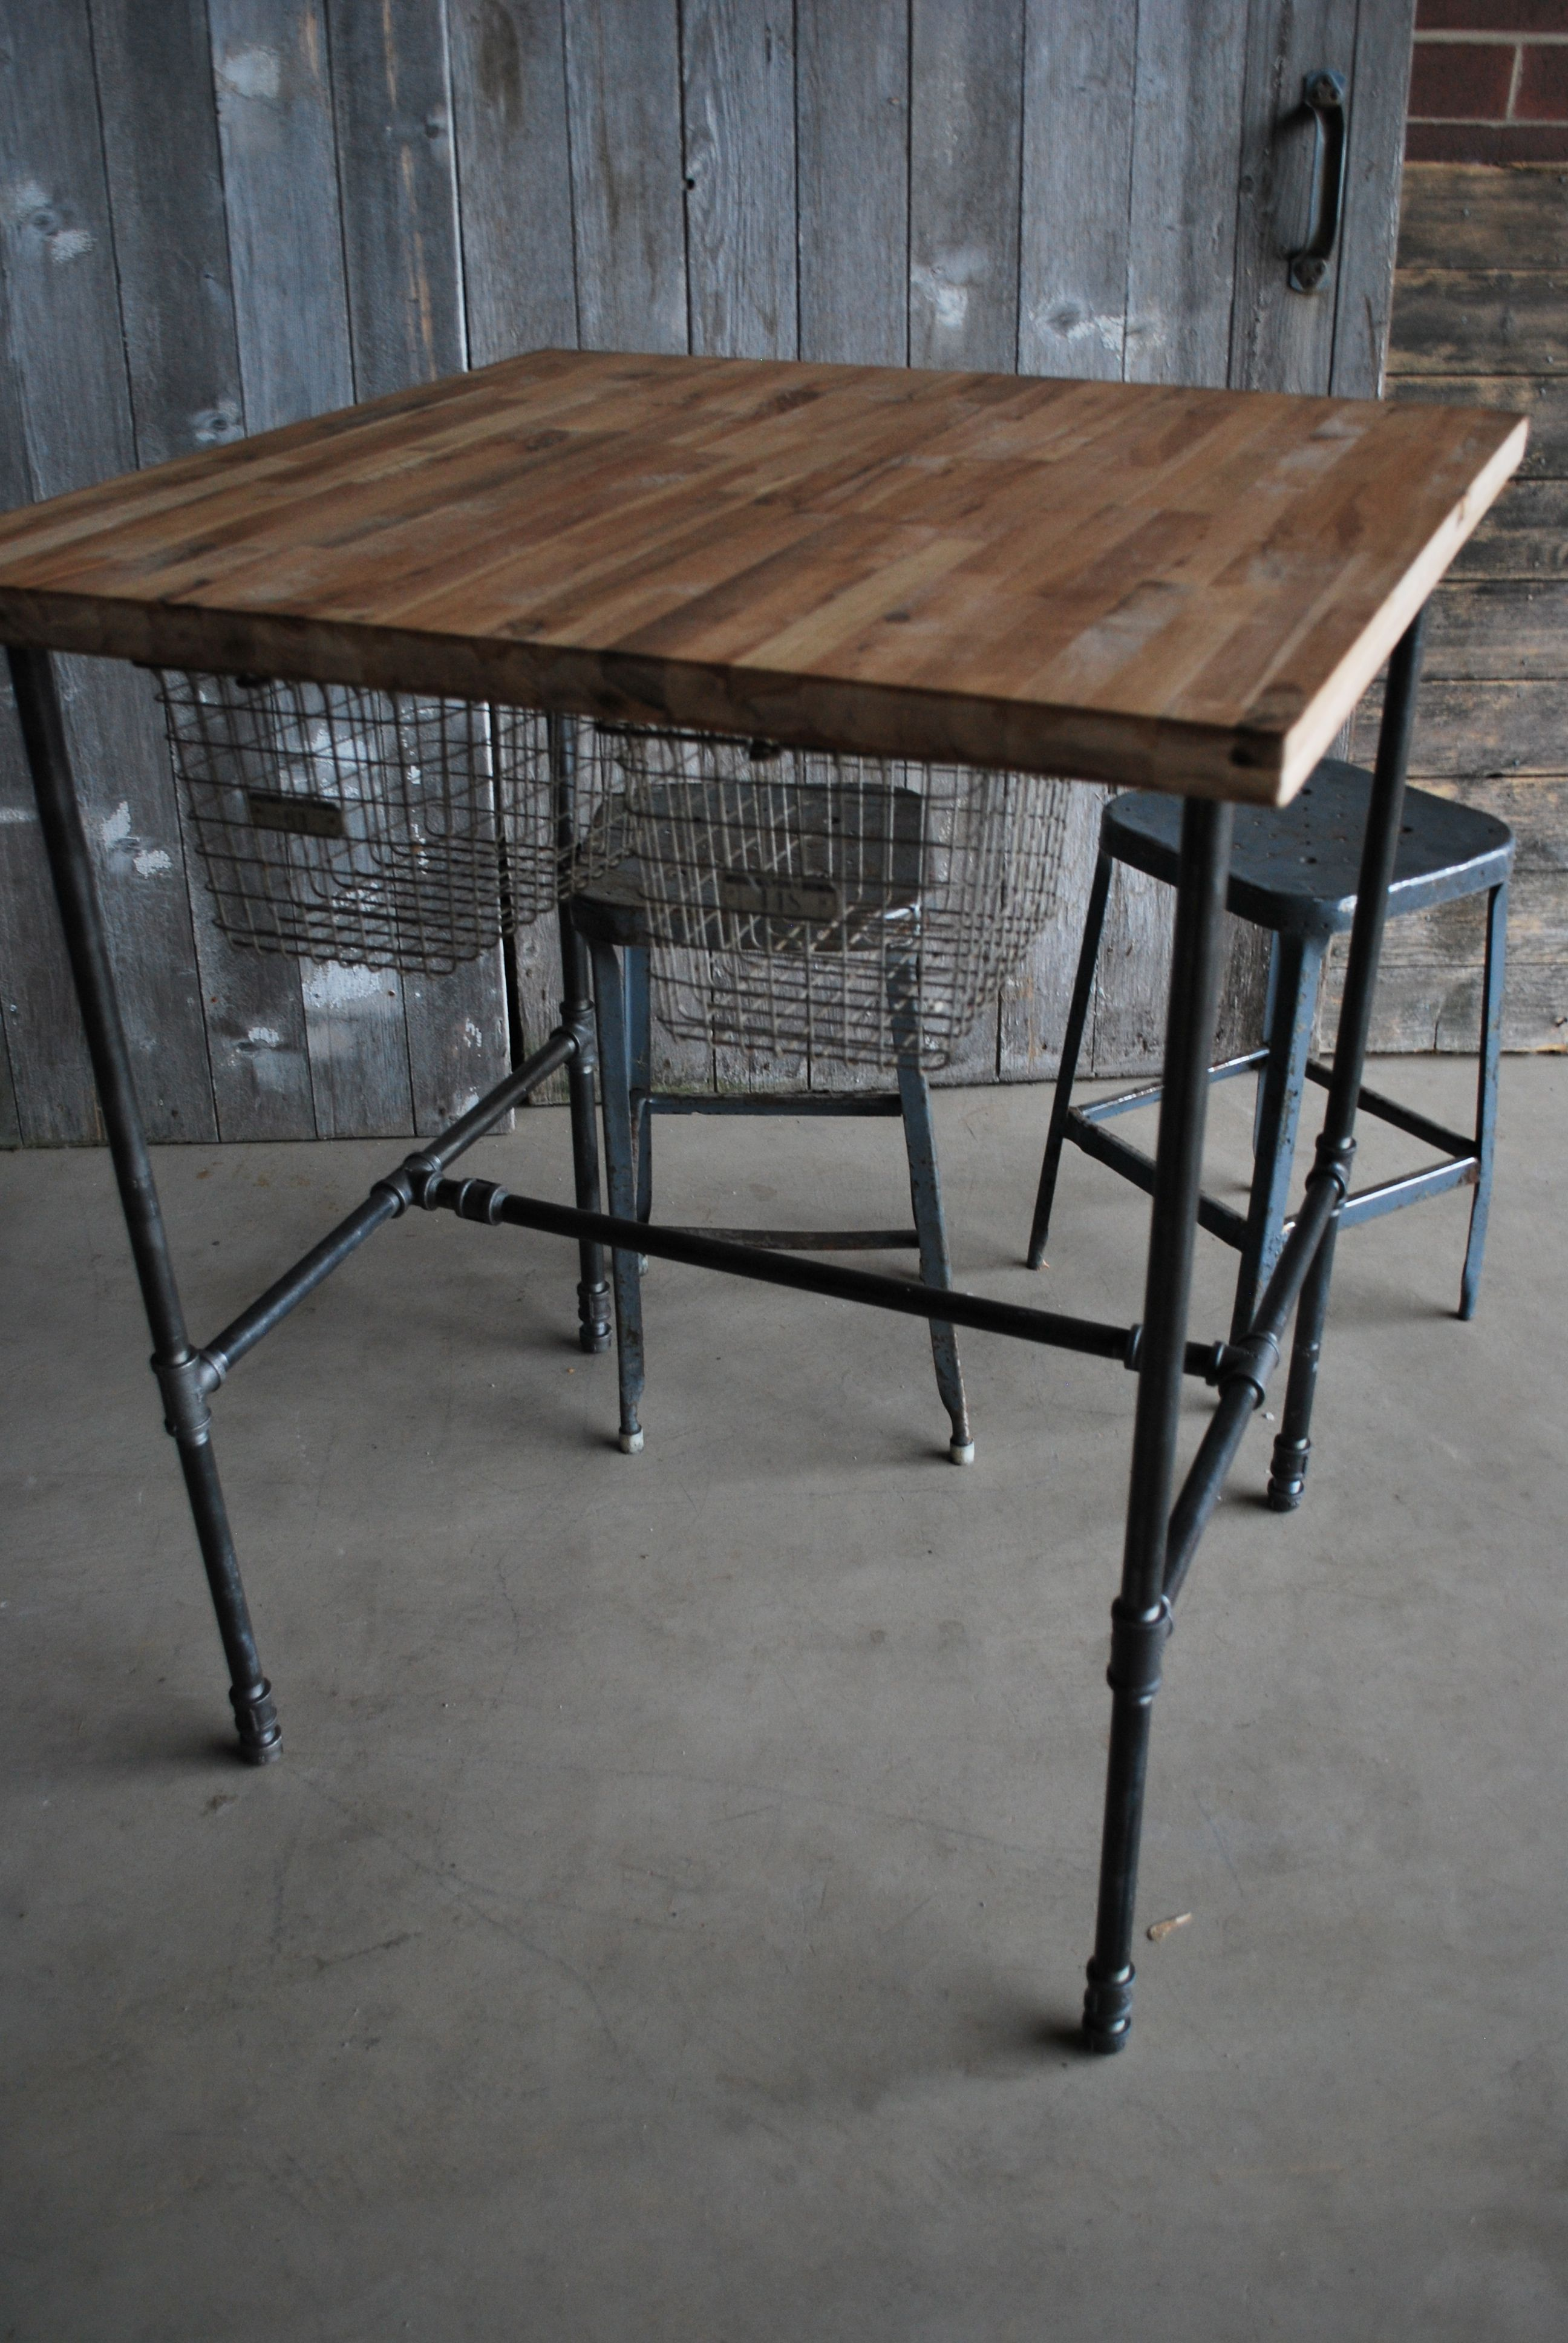 Table made with pipe wood plete with sliding basket drawers